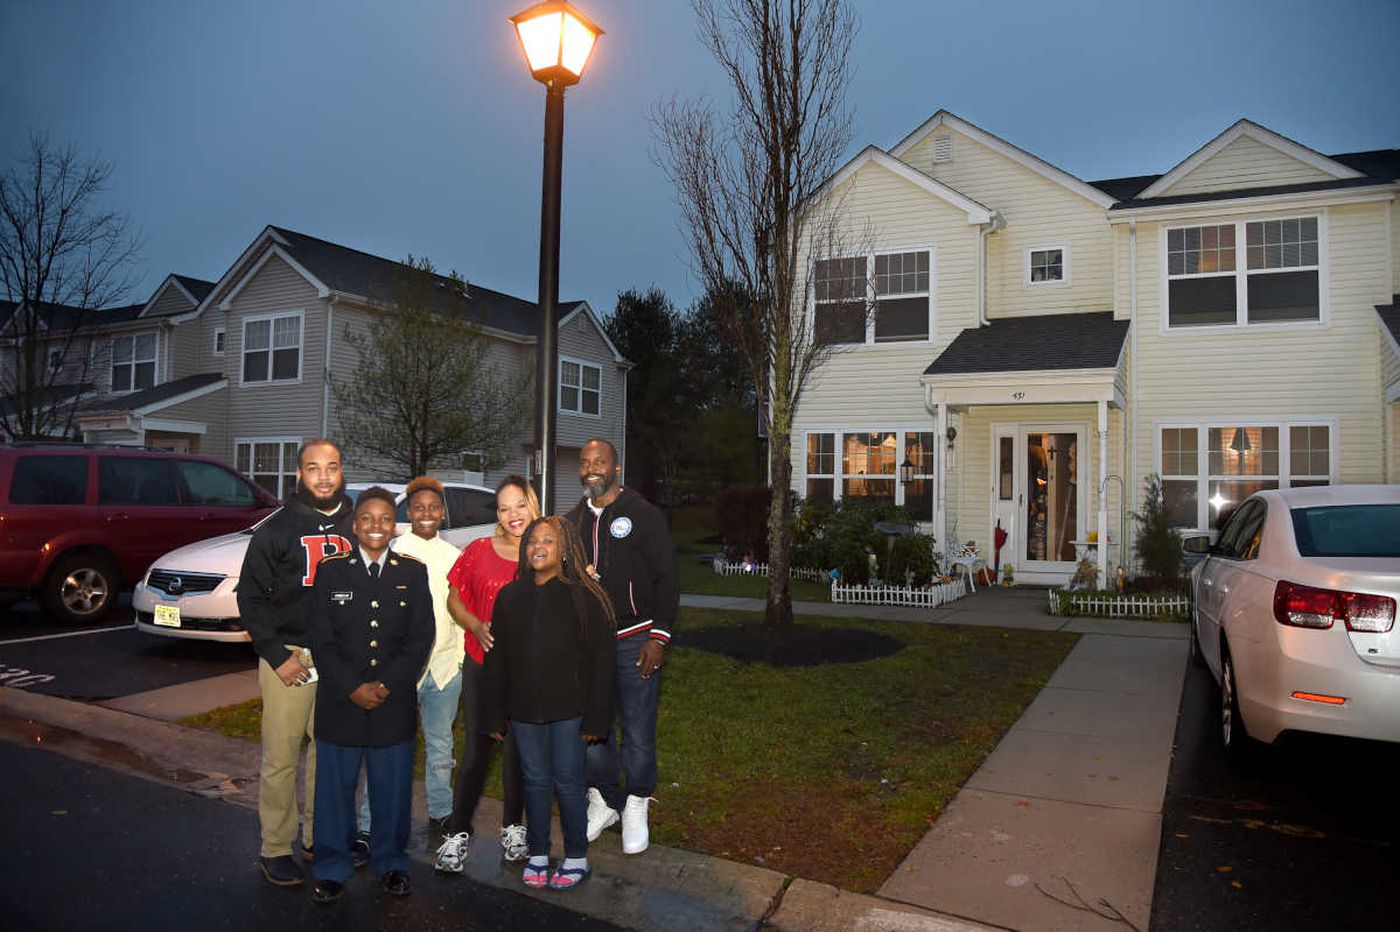 With 20-year plan, Mount Laurel writes 'new chapter' in long affordable-housing saga